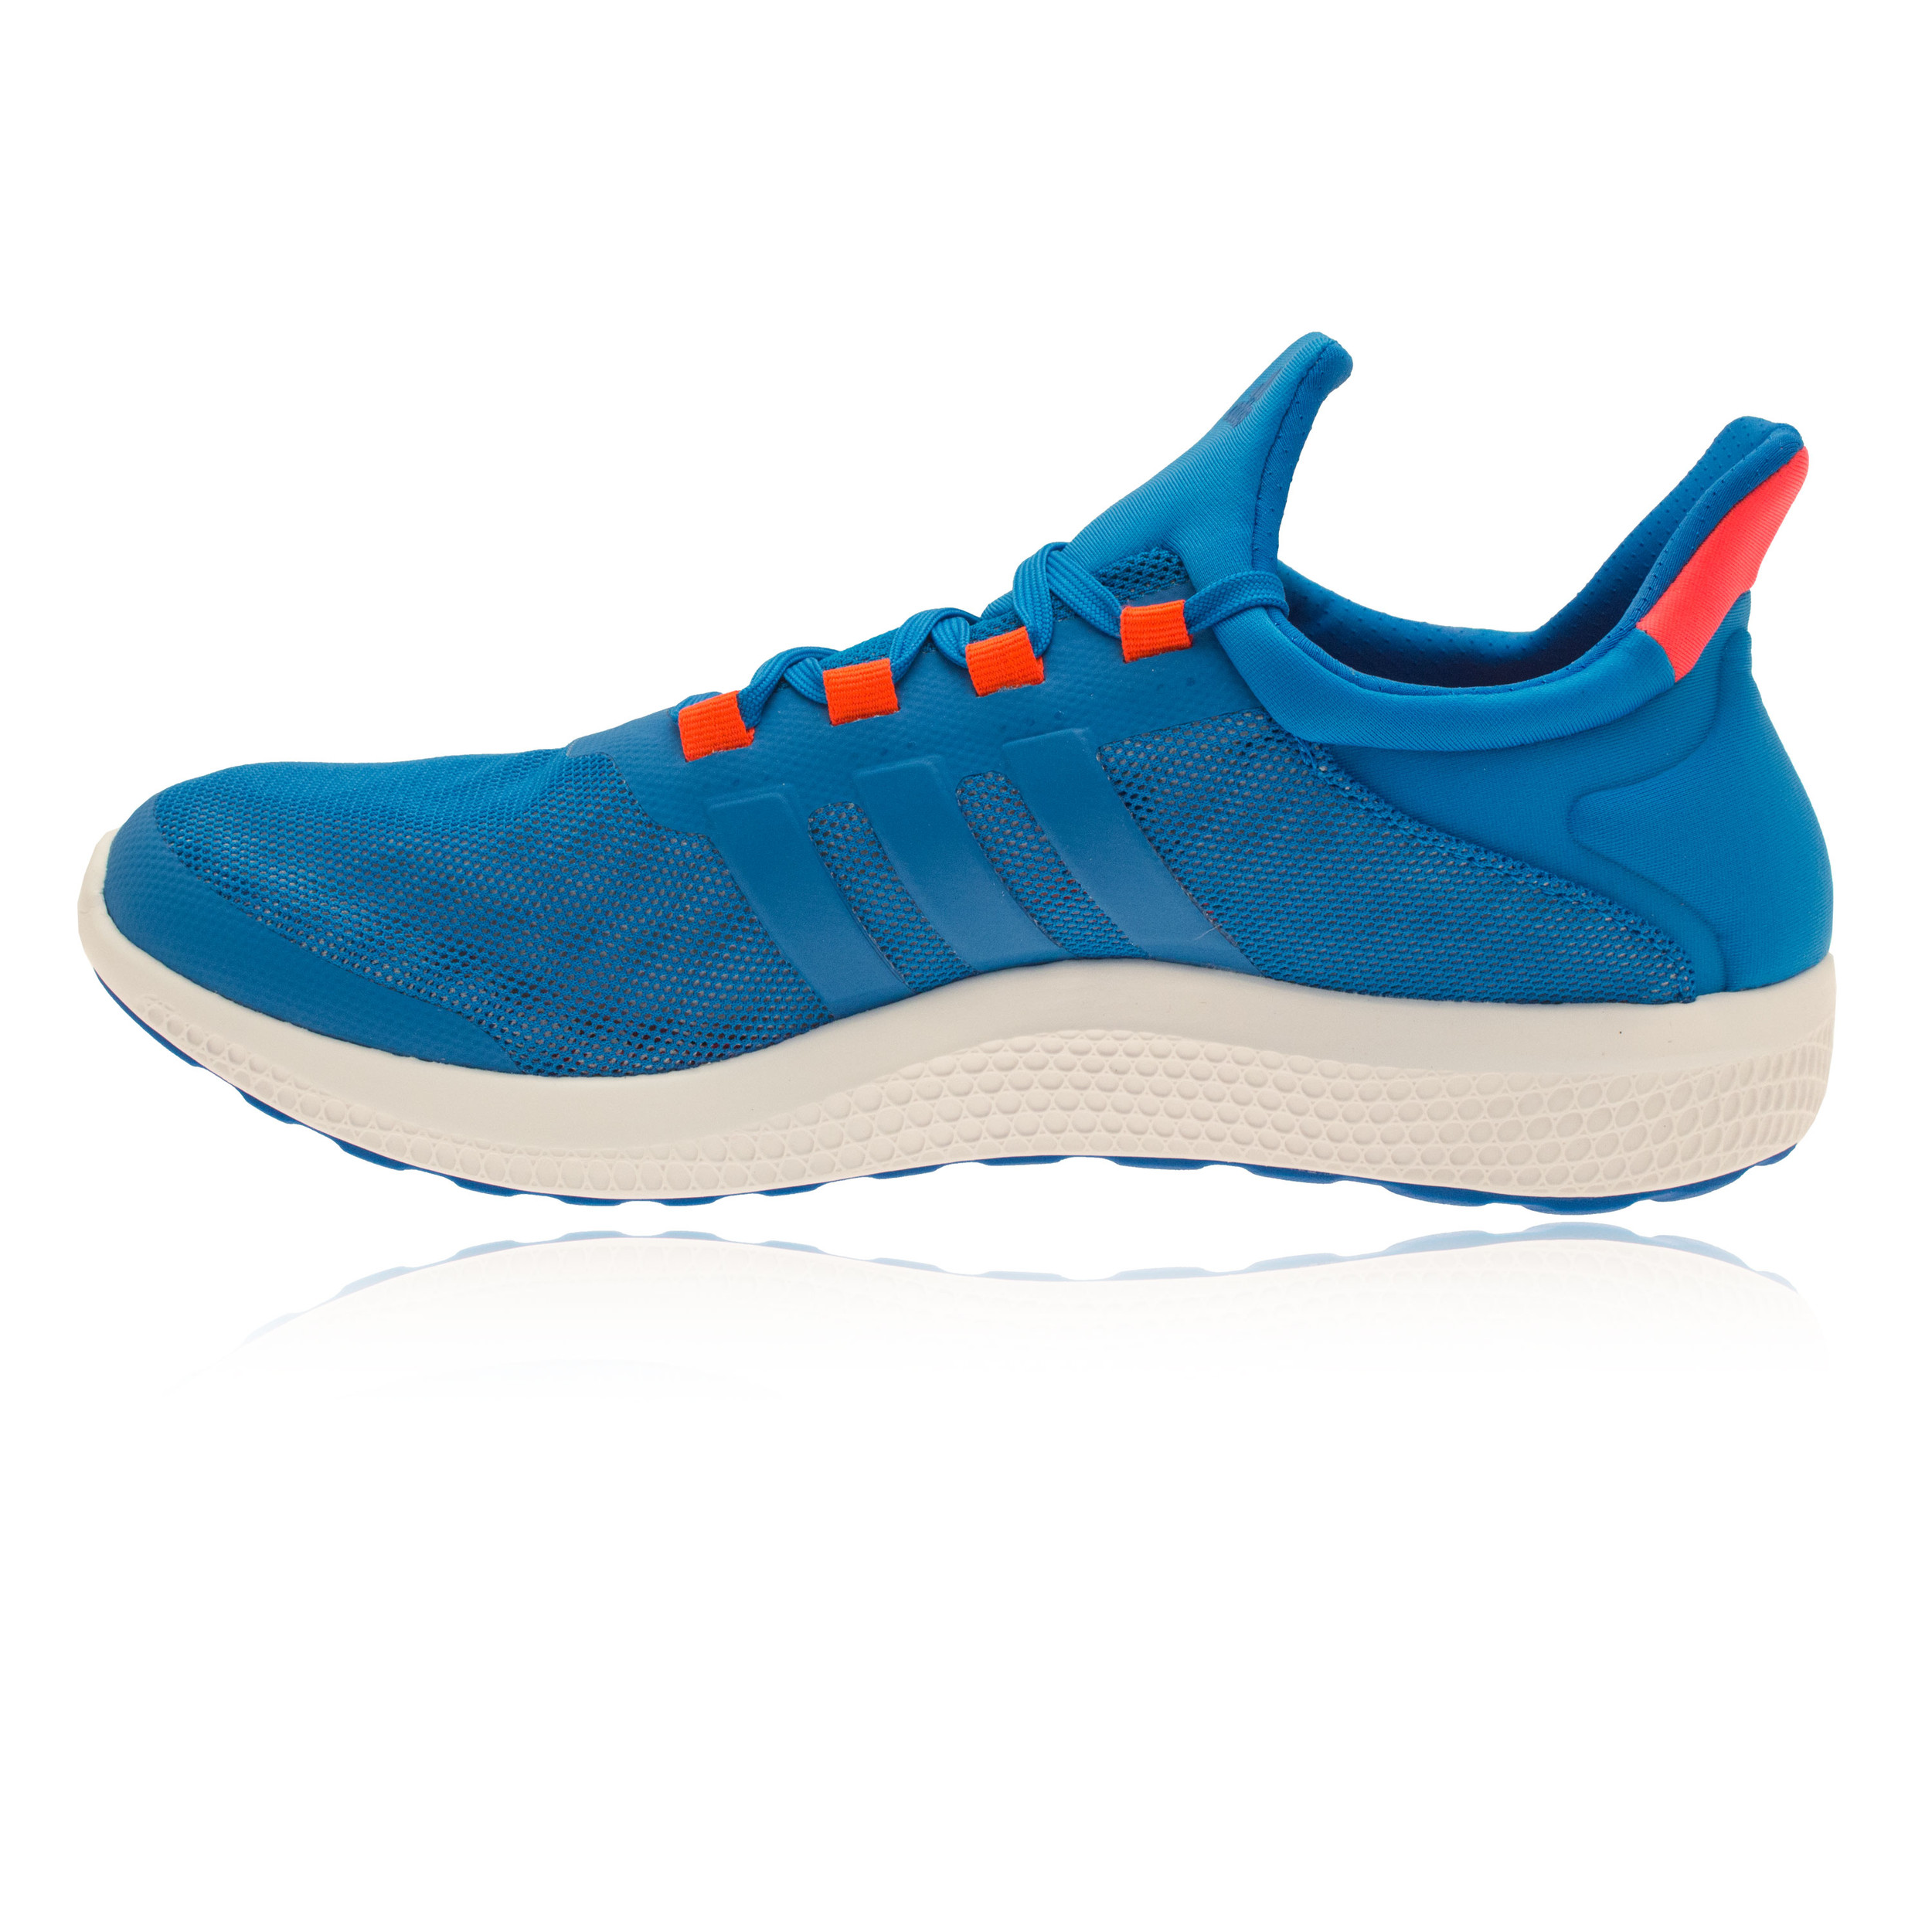 Adidas CC Sonic Mens Sneakers Running Gym Sports Shoes